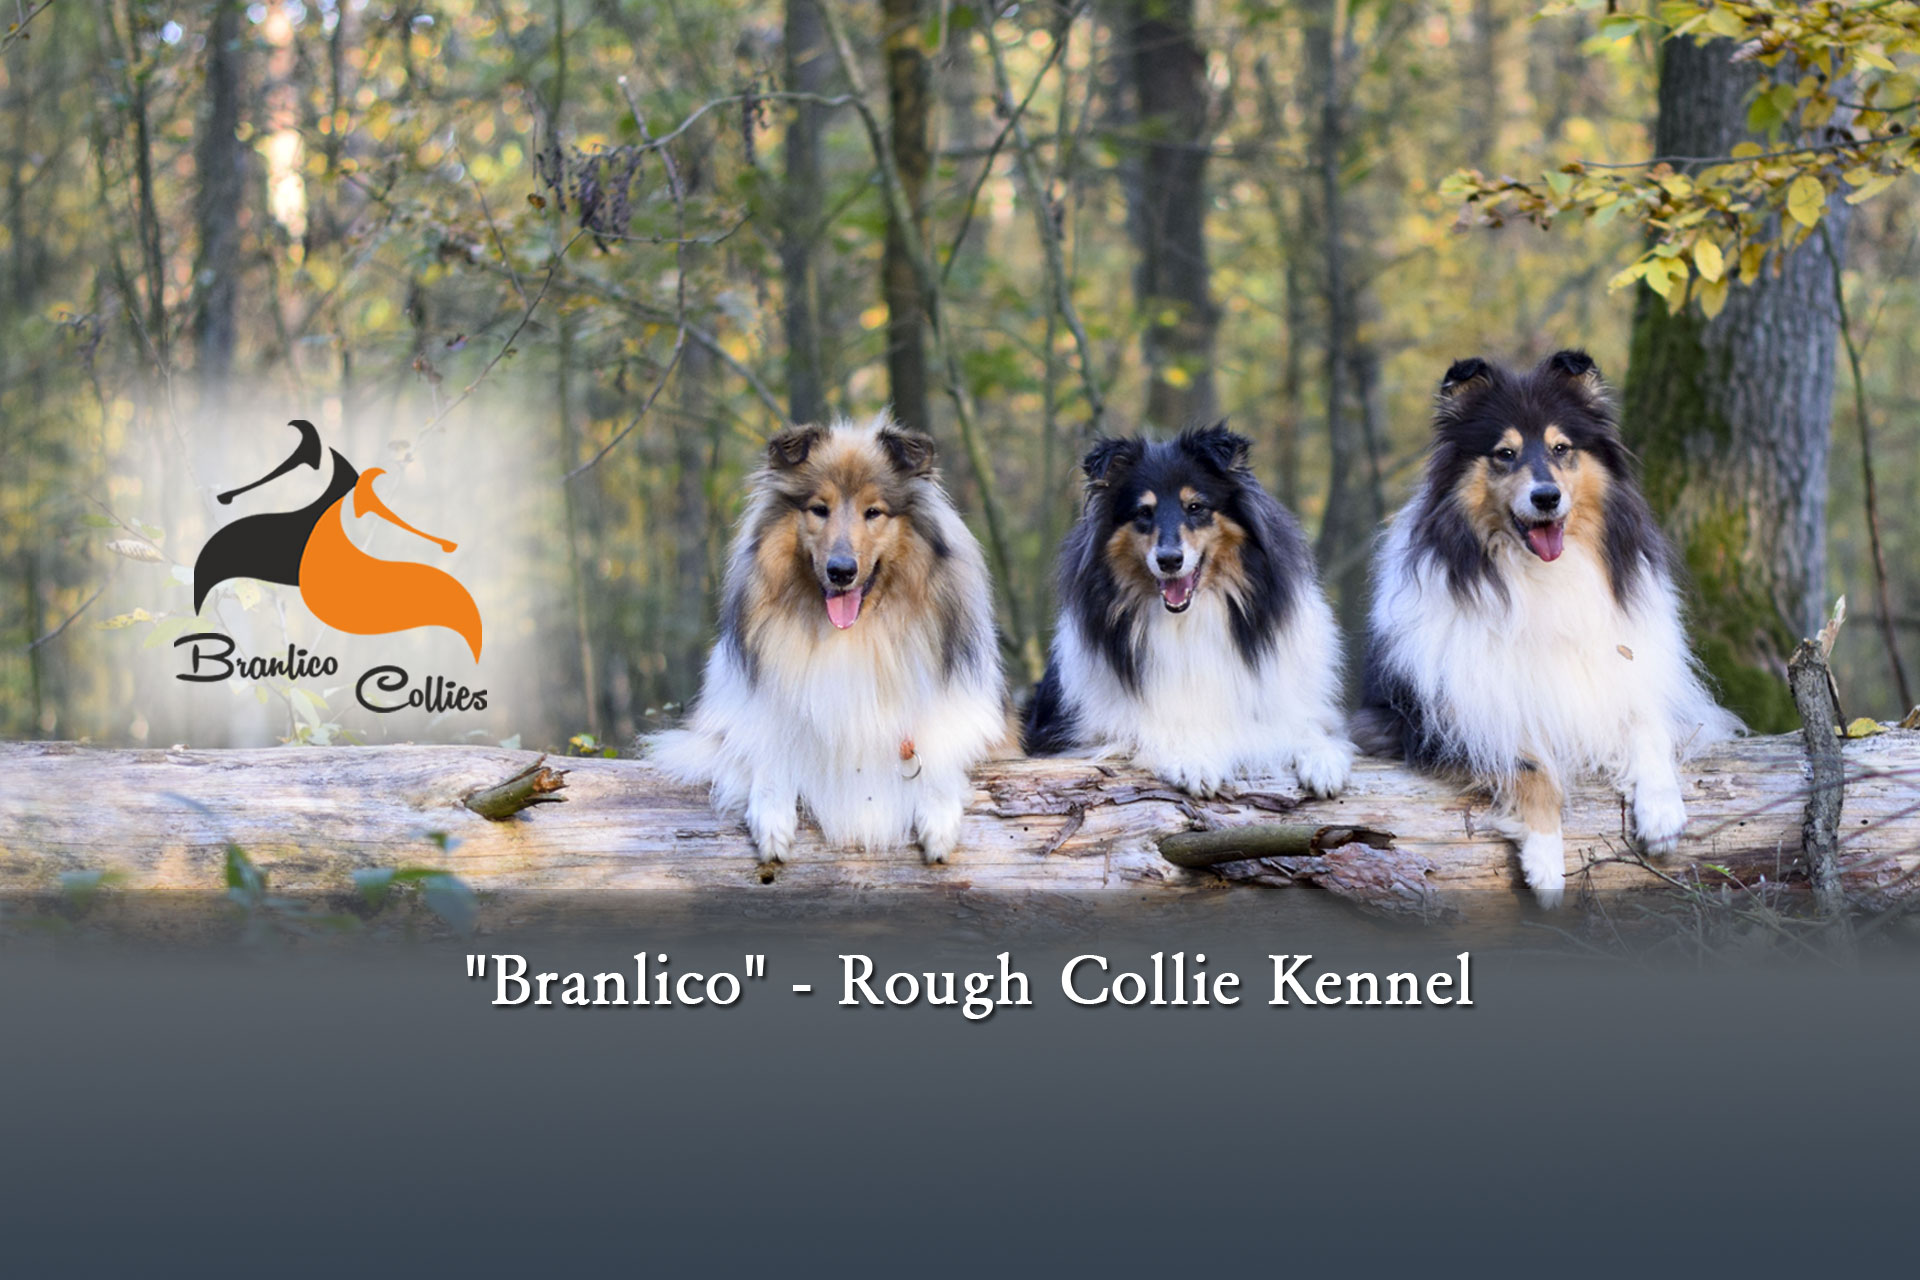 branlico collie kennel